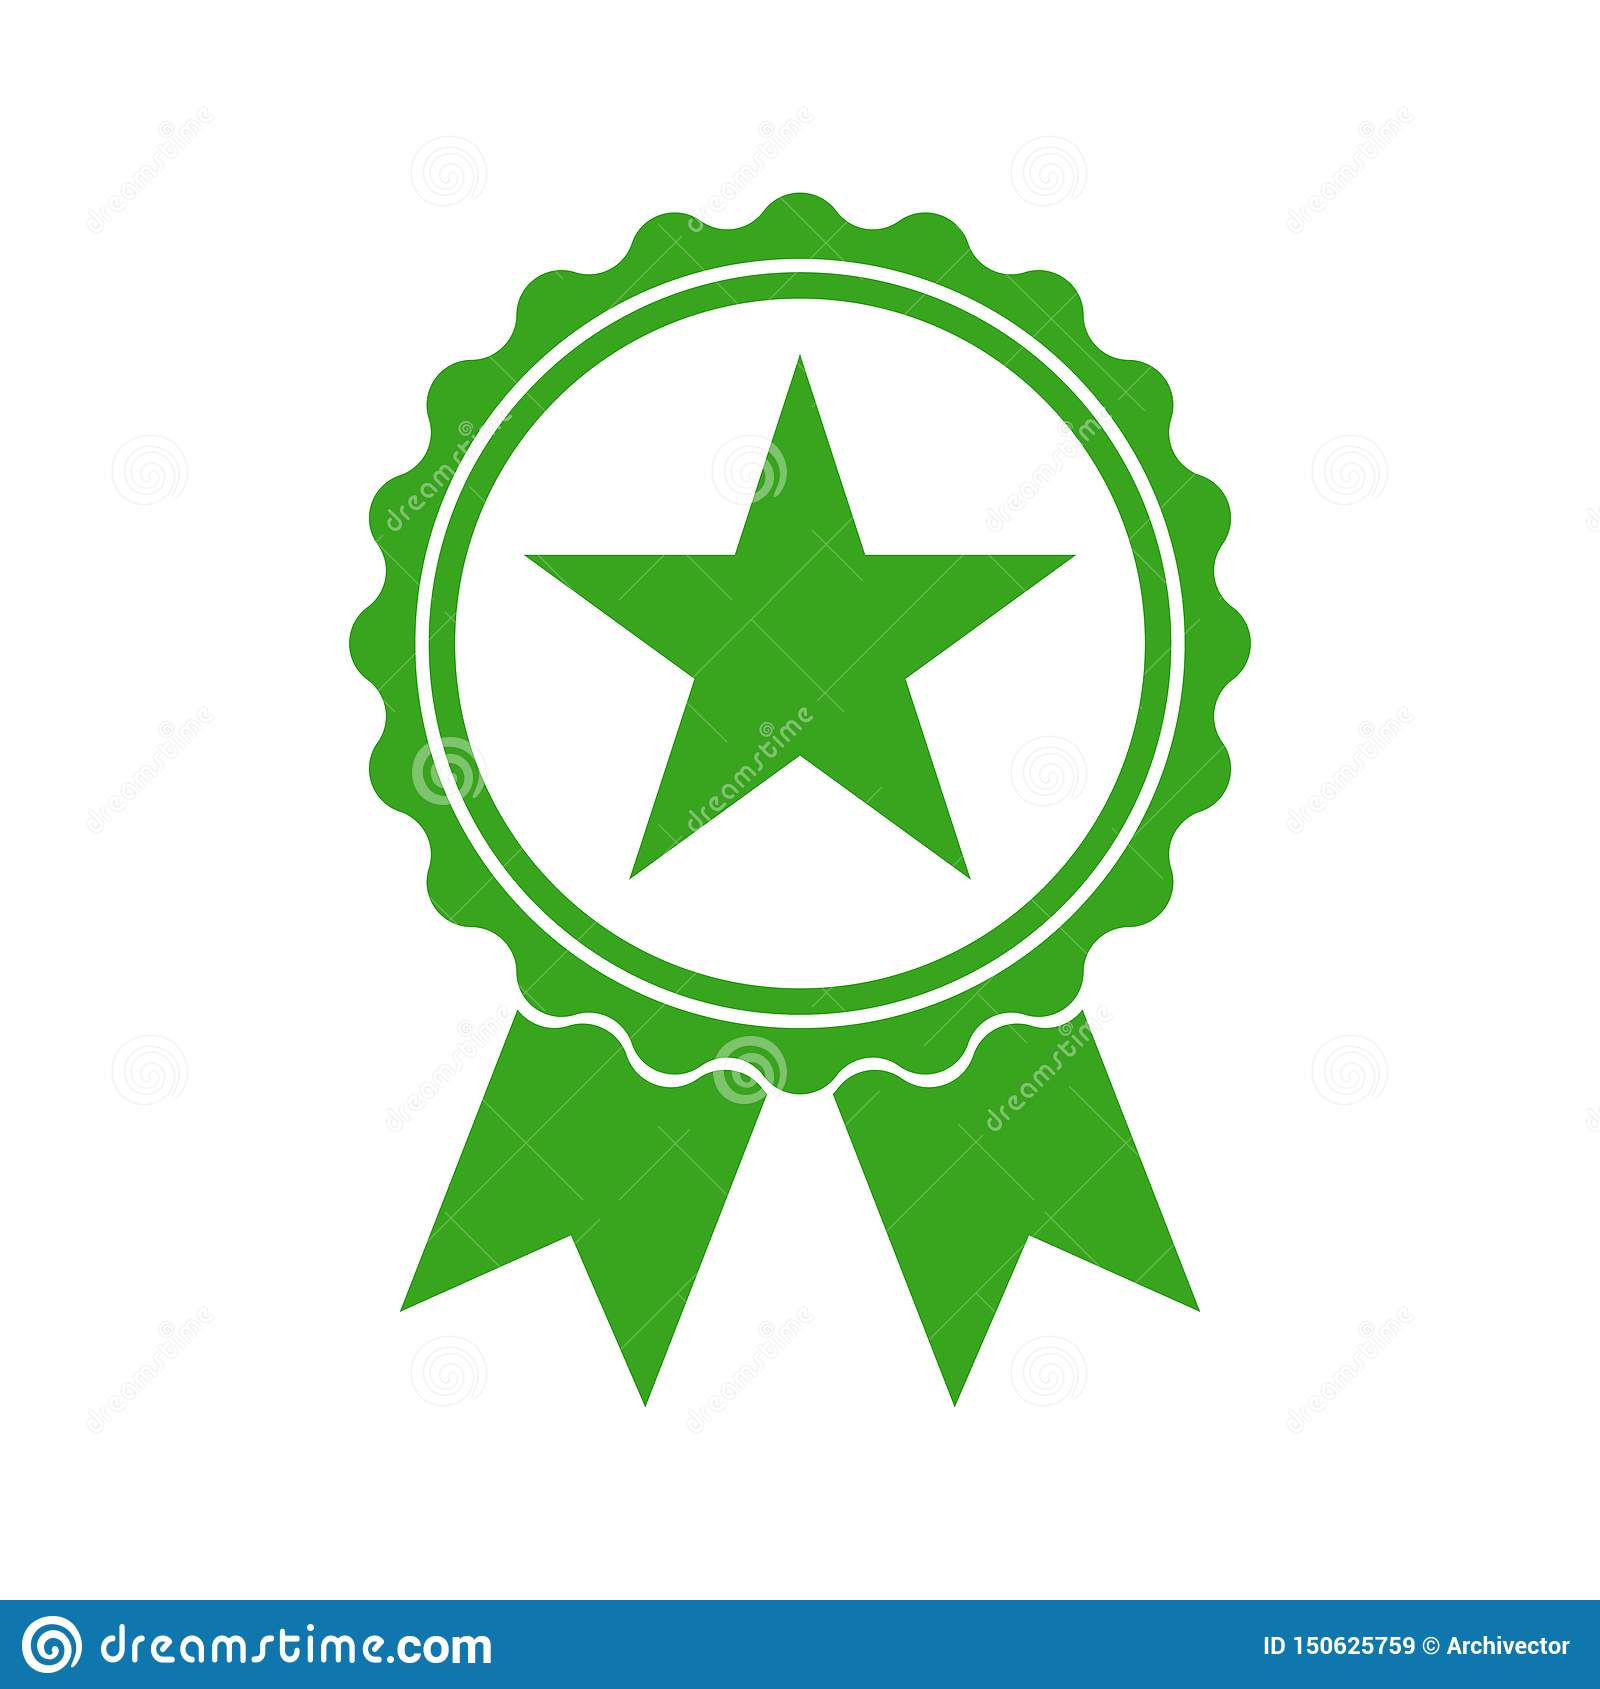 Quality medal green icon. Confirmatory sign